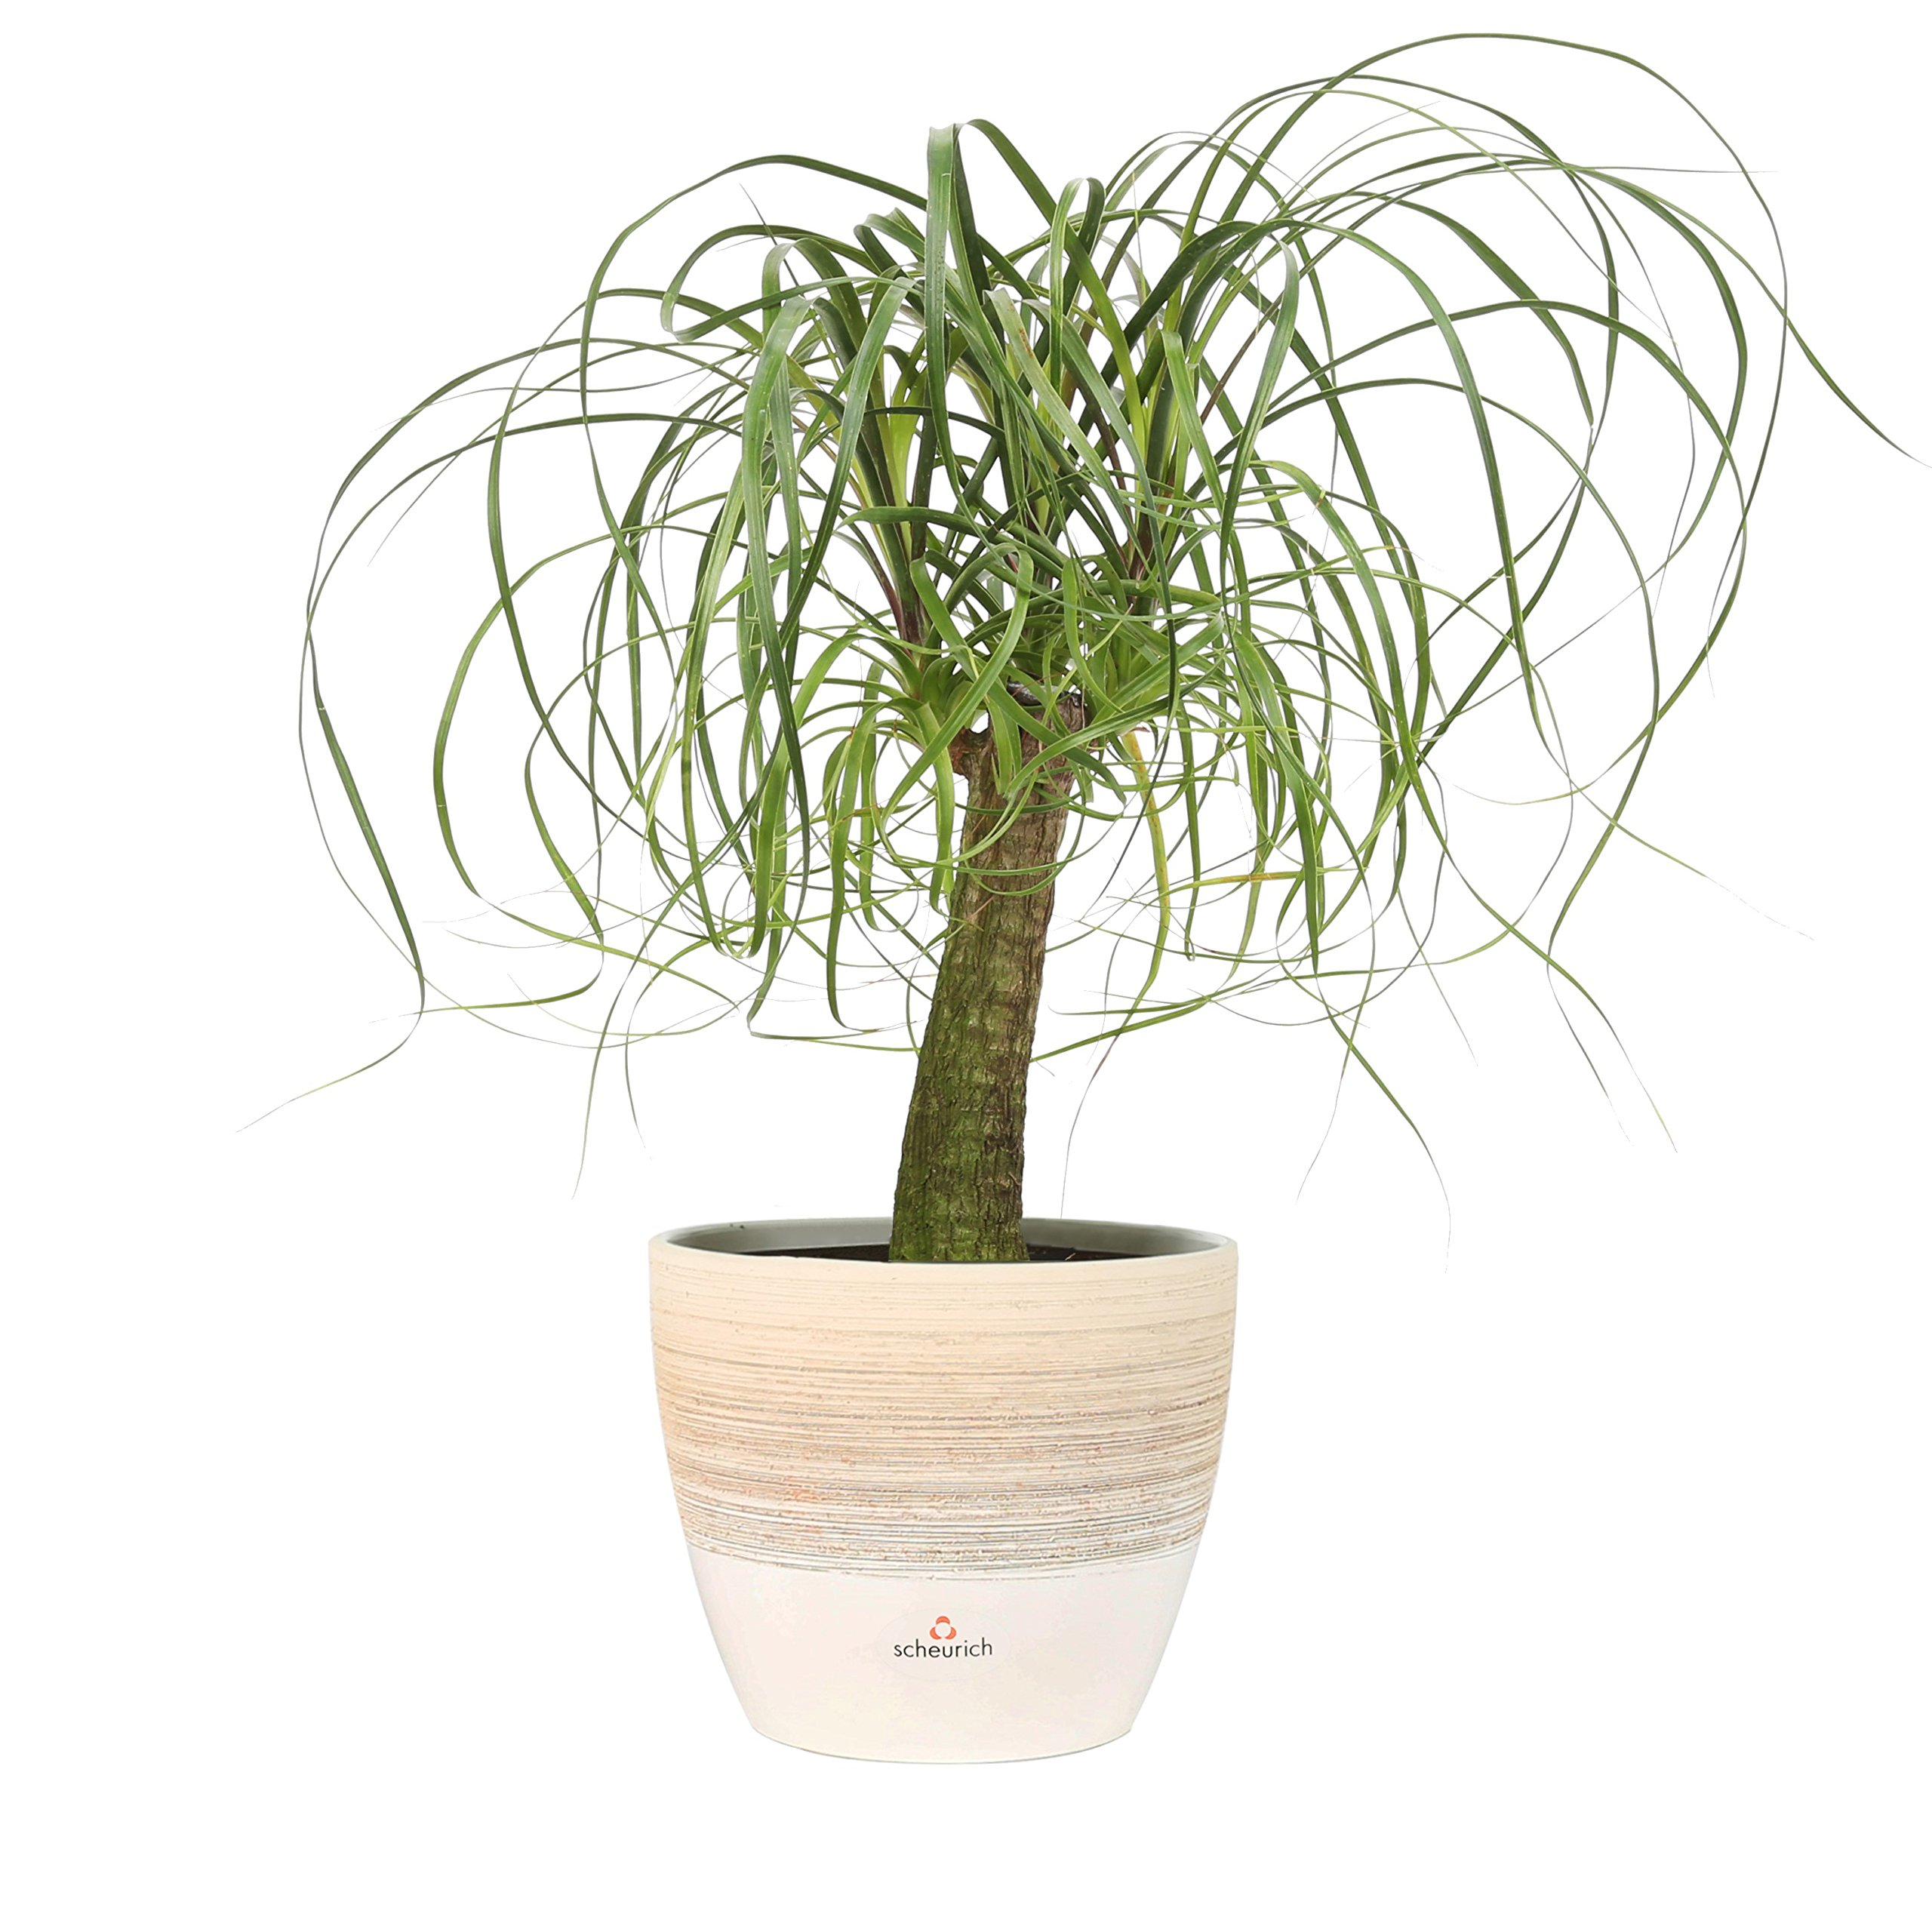 Costa Farms, Premium Live Indoor Ponytail Palm, Beaucarnea recurvata, Tabletop Plant, Vanilla Cream Scheurich Ceramic Decorator Pot, Shipped Fresh from Our Farm, Excellent Gift